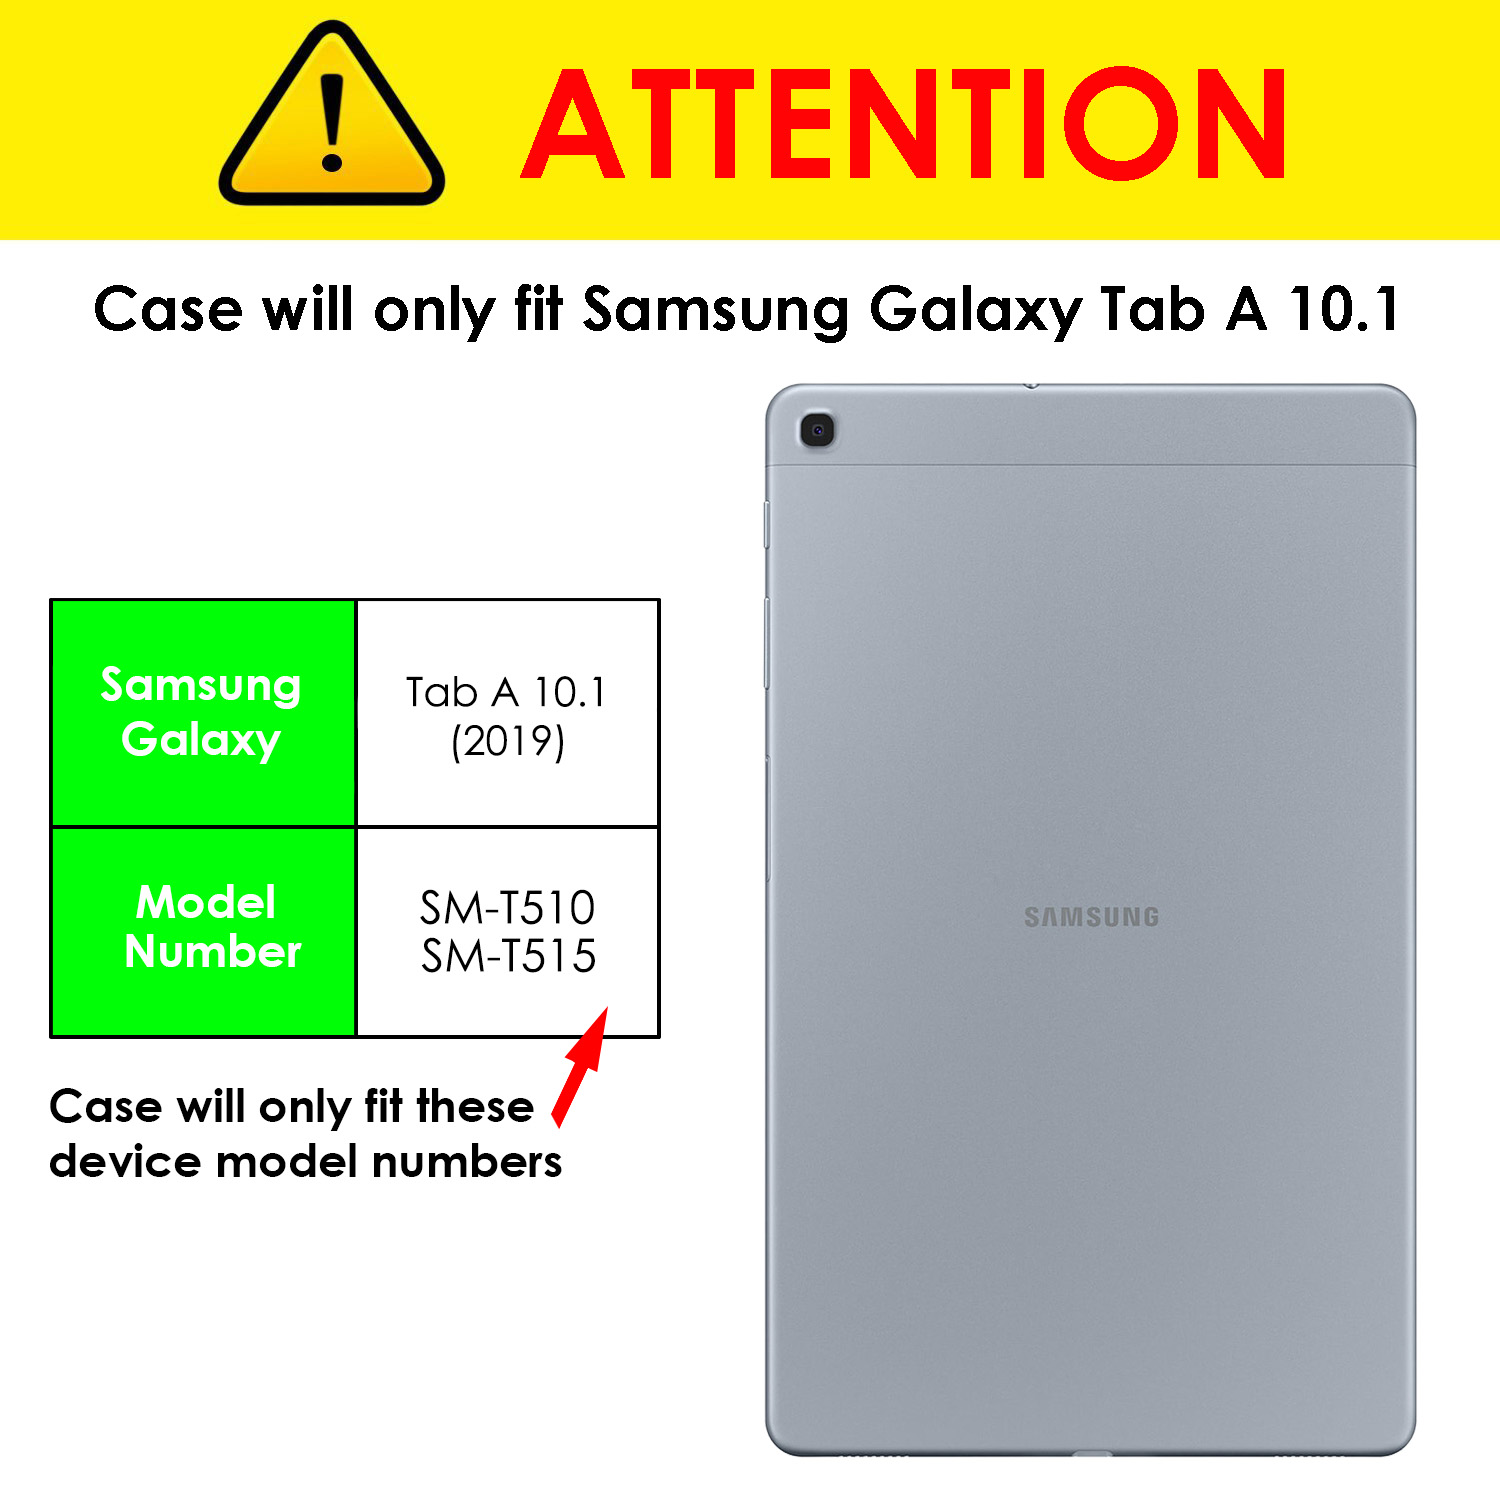 miniature 44 - Samsung Galaxy Tab A 10.1 2019 Étui Magnétique Protection & Support + Stylet